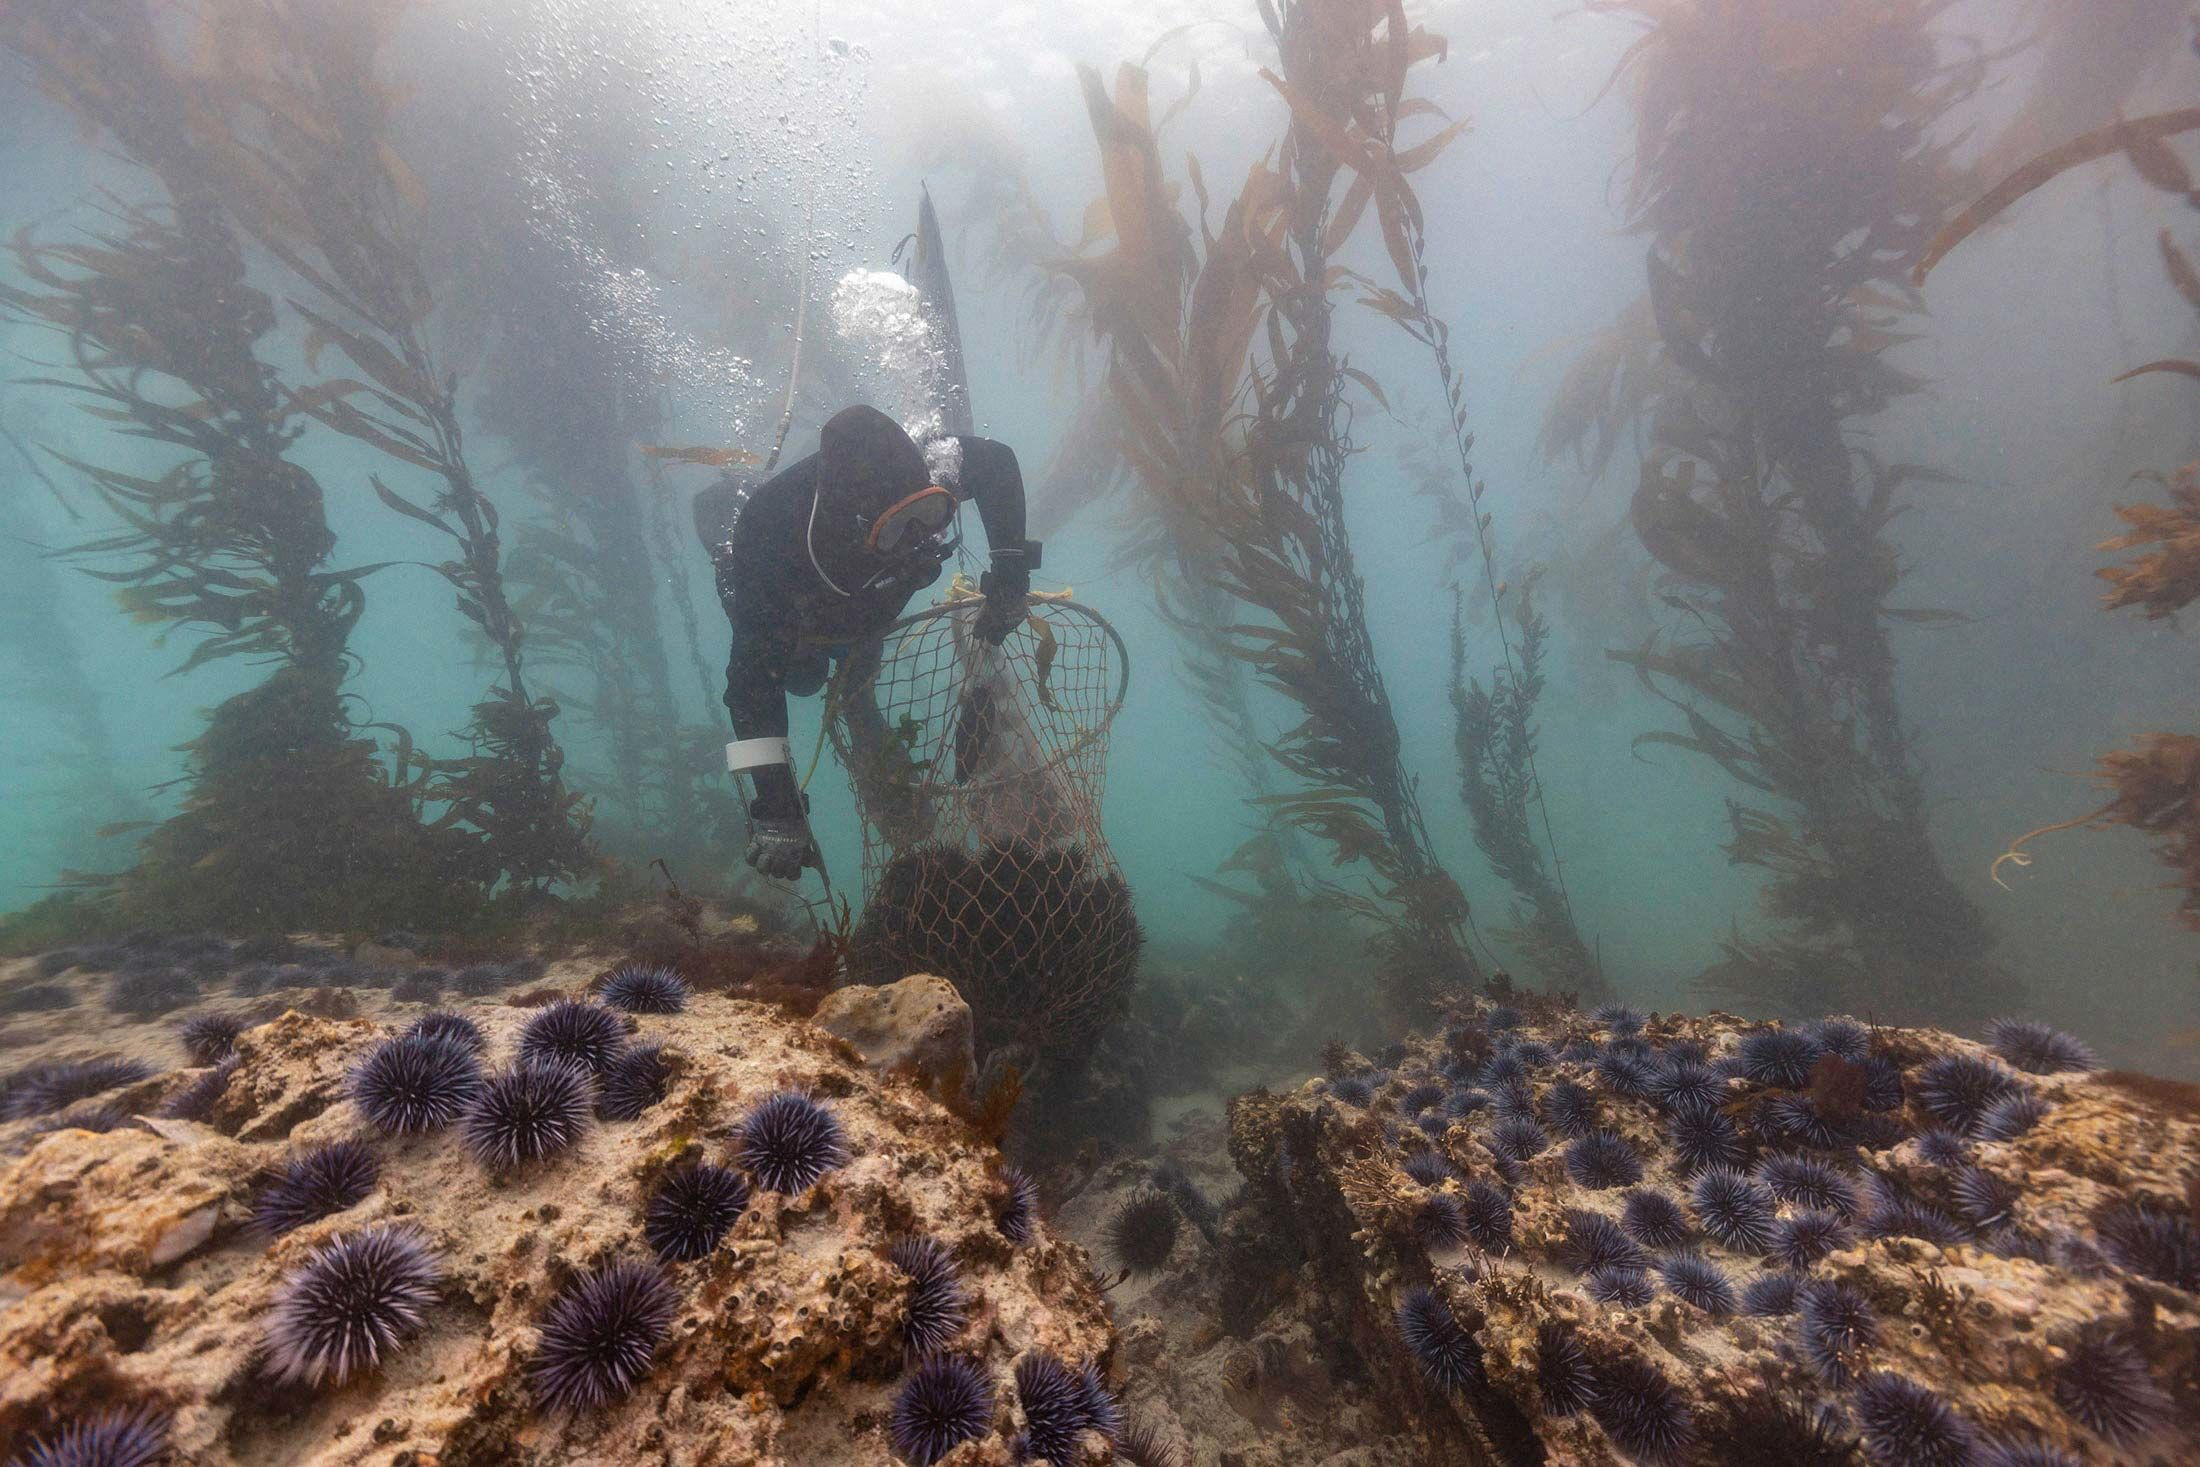 Diving for Sea Urchins to Revive Barren Oceans